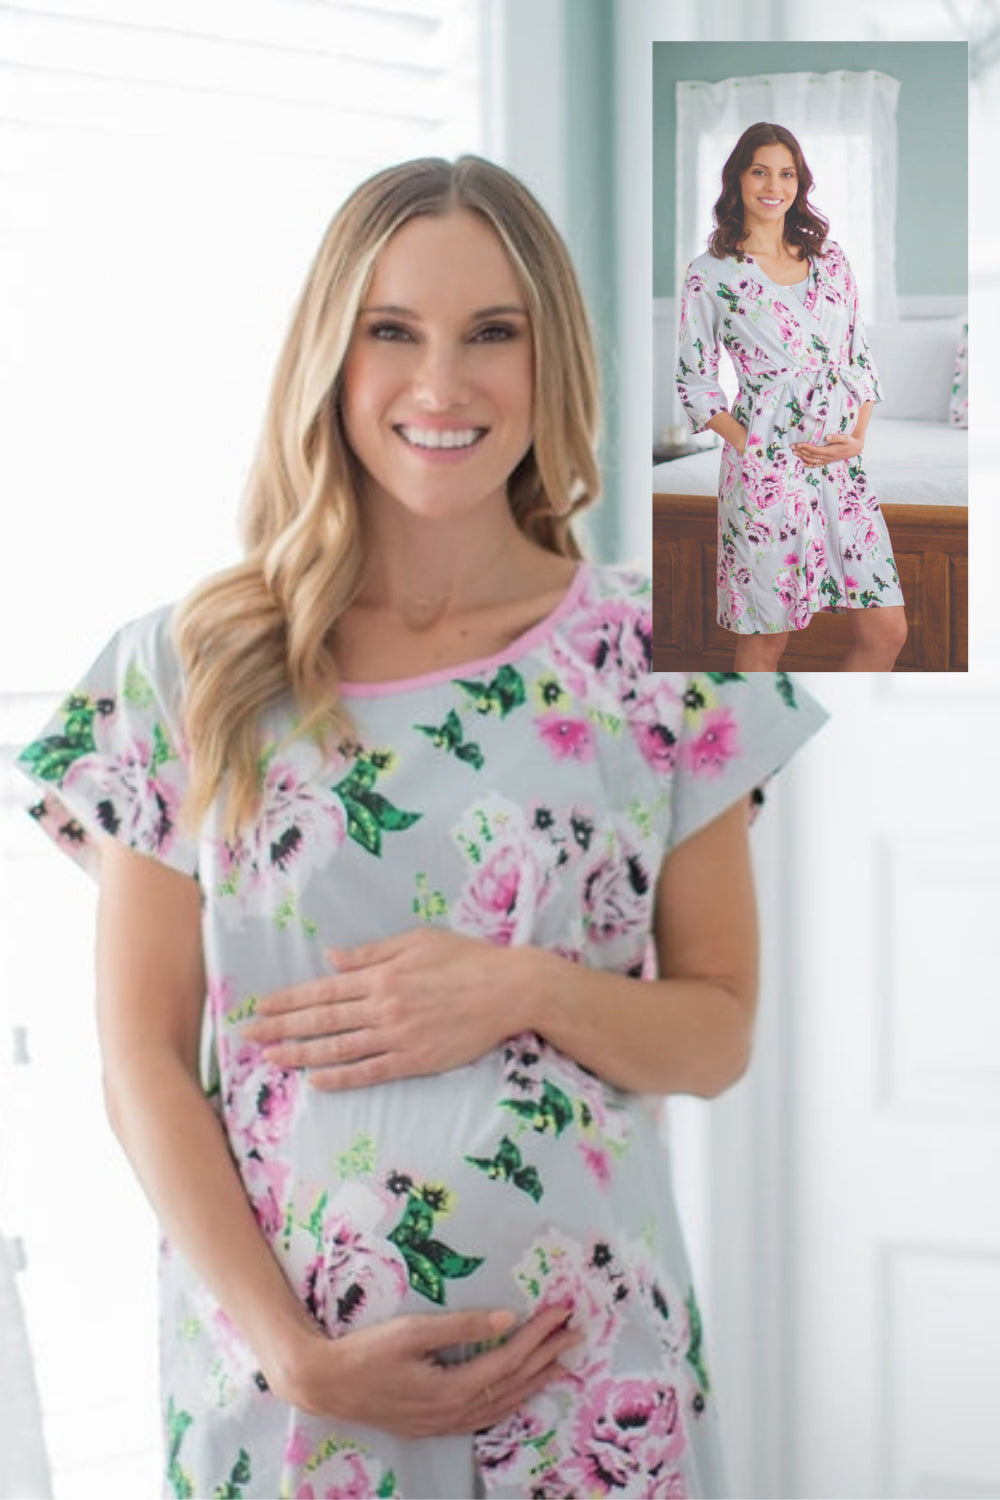 bfa4ac65ecb06 Olivia Floral Maternity Delivery Hospital Gown Gownie & Delivery Robe Set